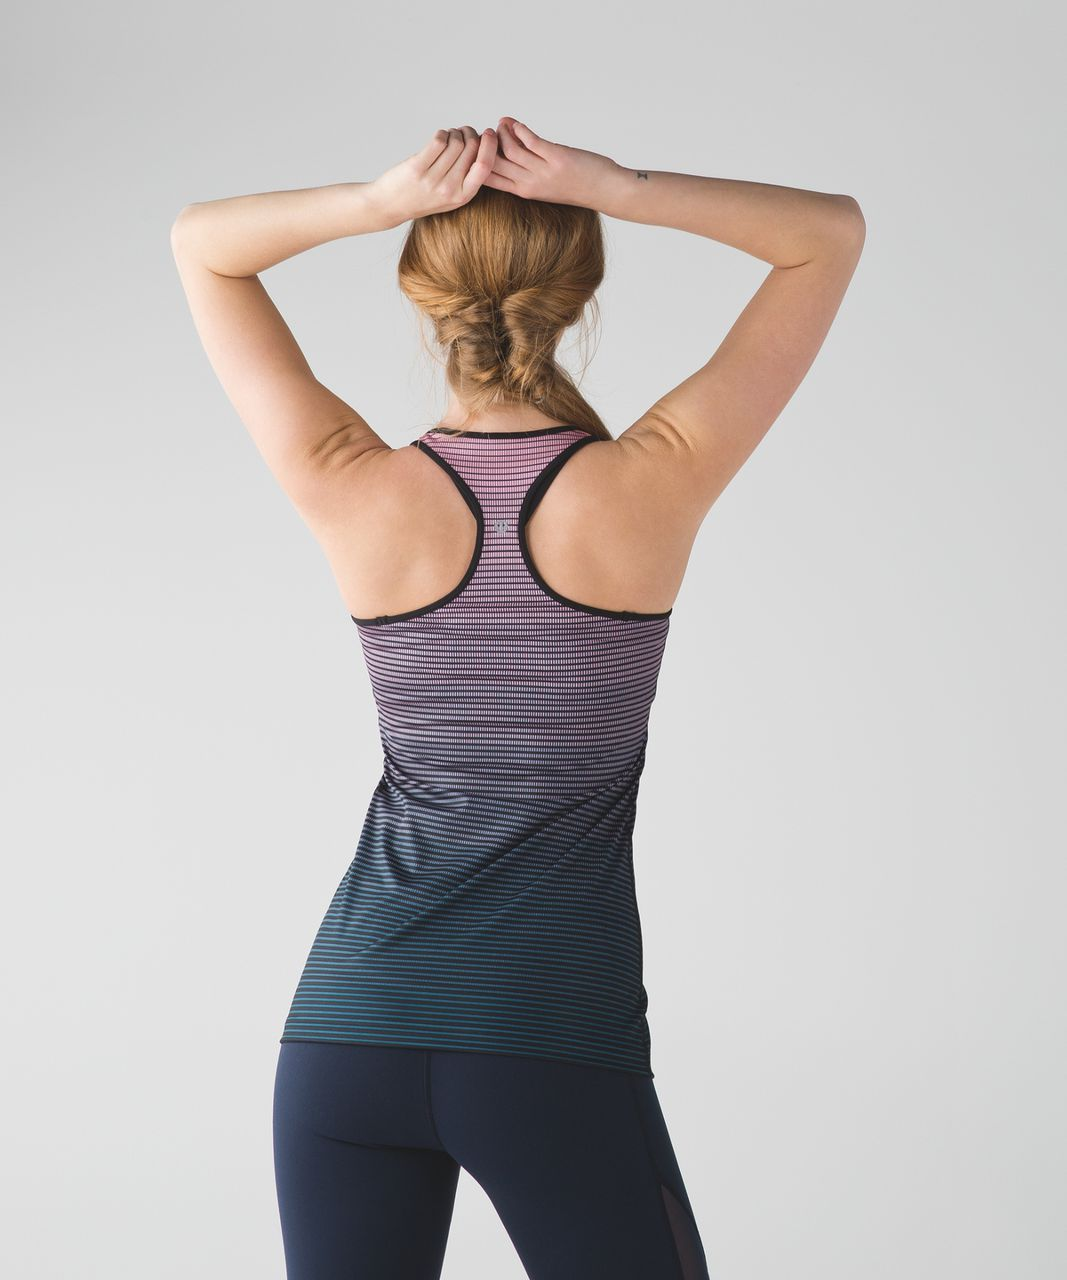 Lululemon Cool Racerback - Double Gradient Yum Yum Pink Alberta Lake